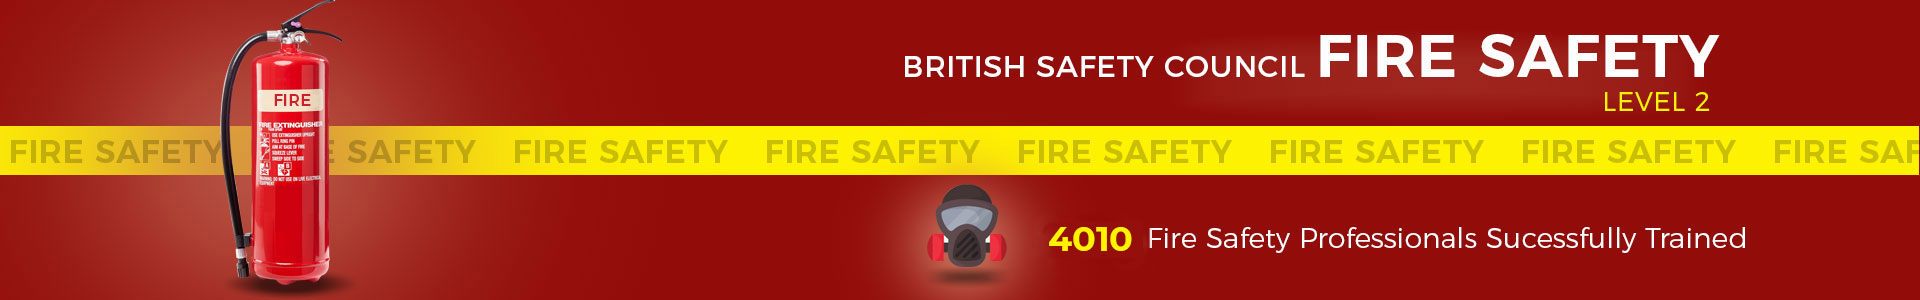 bsc-fire-safety